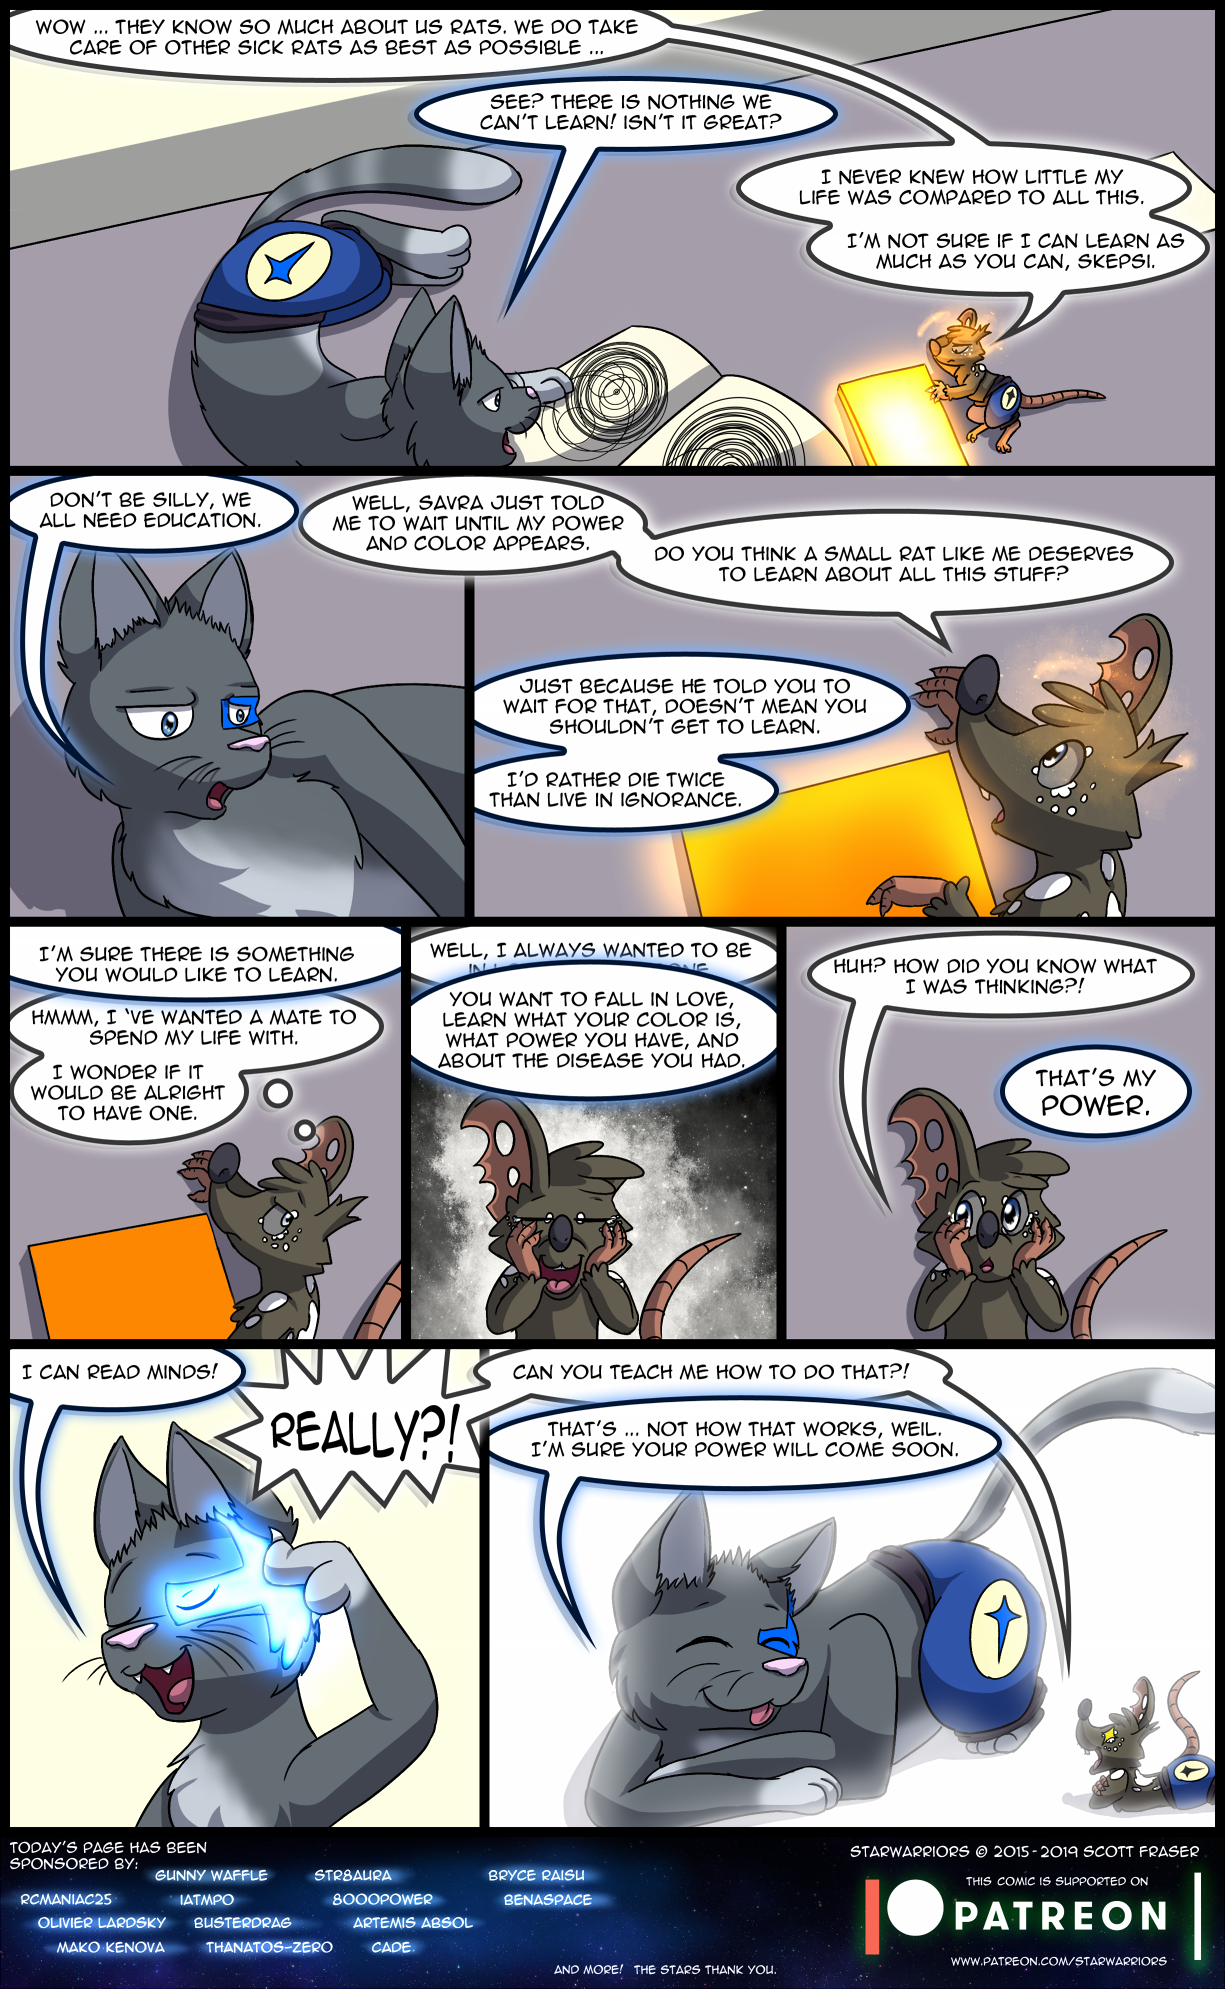 Ch4 Page 28 – That's My Power